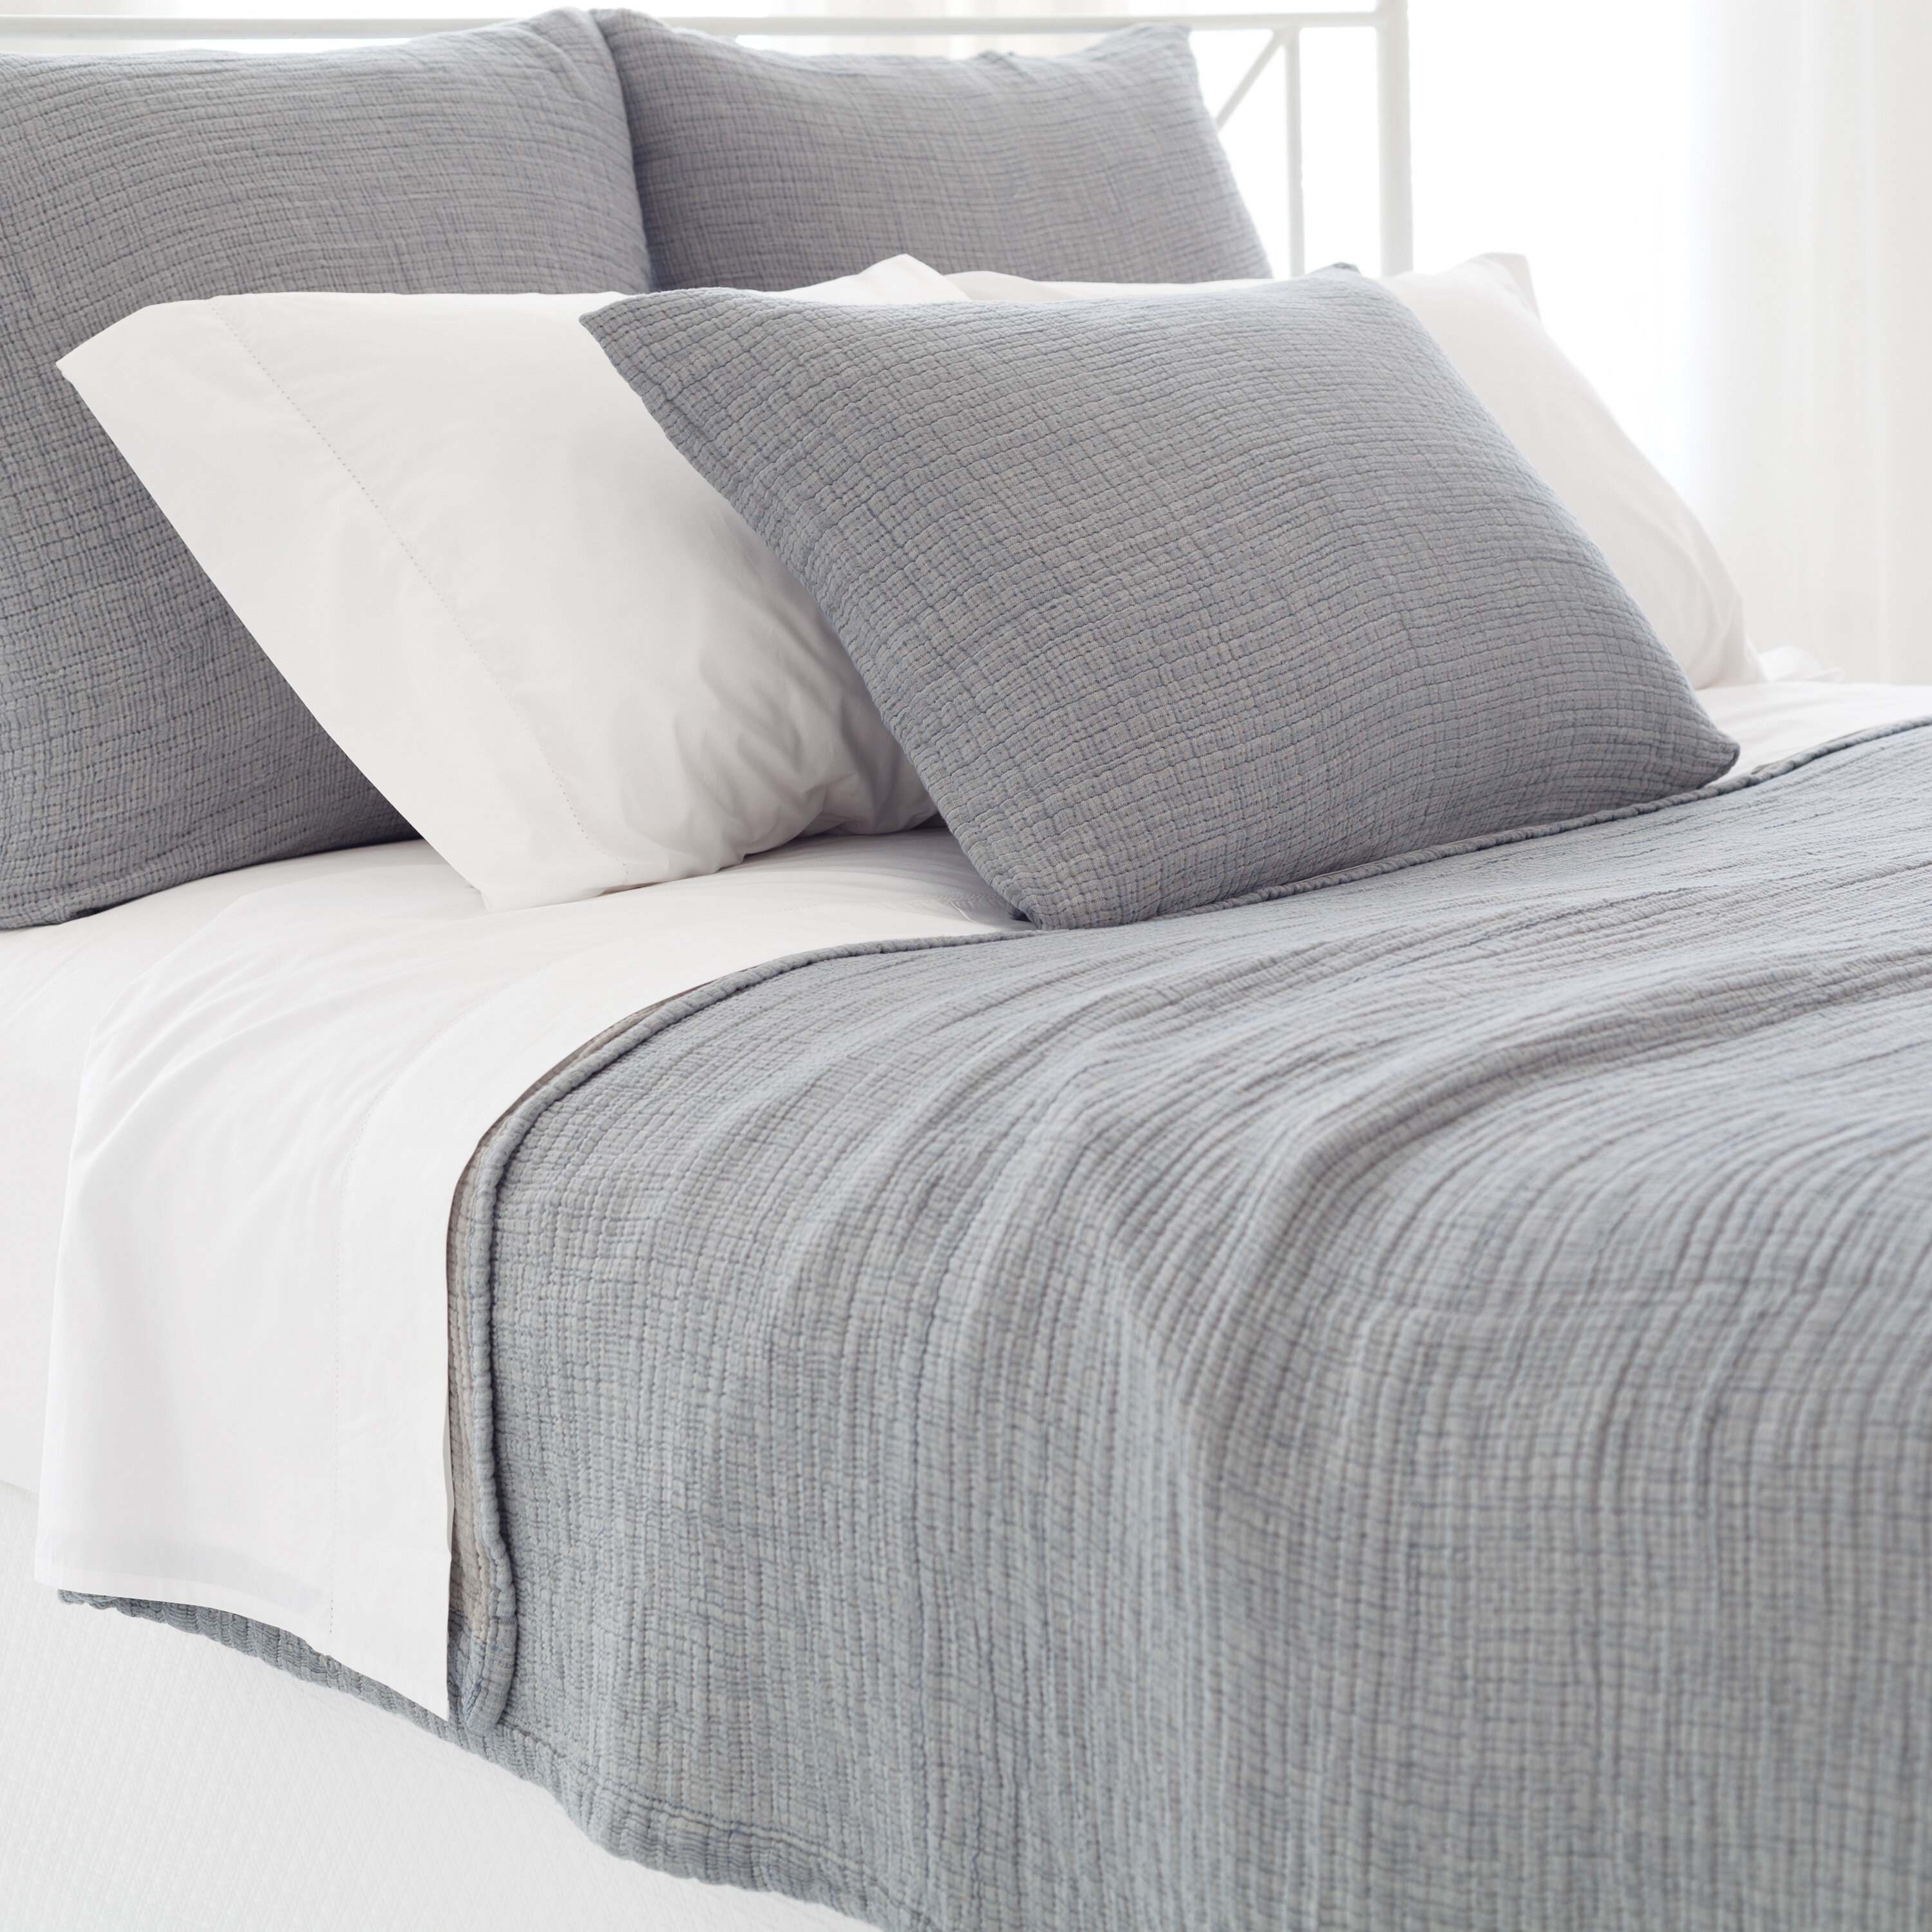 with beautiful size bedroom and bedspread matelasse bed mattelasse king comfortable bedspreads maltese colors coverlet bedding very